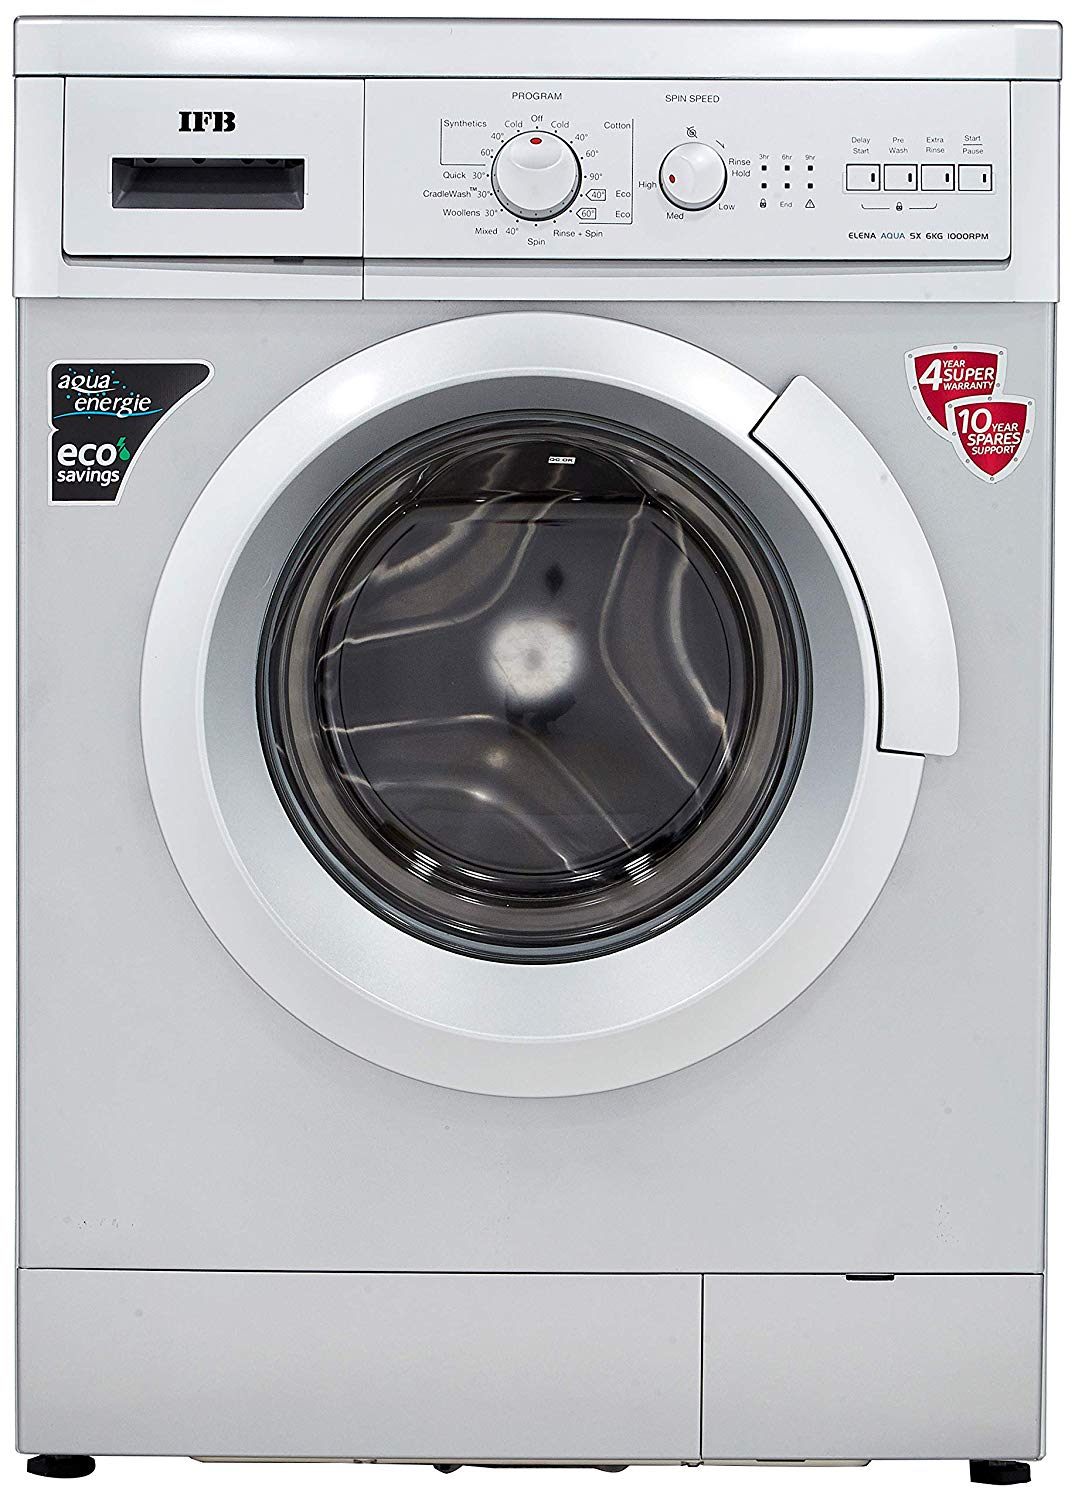 IFB 6 kg Washing Machine (Elena Aqua SX LDT) | compareye.com